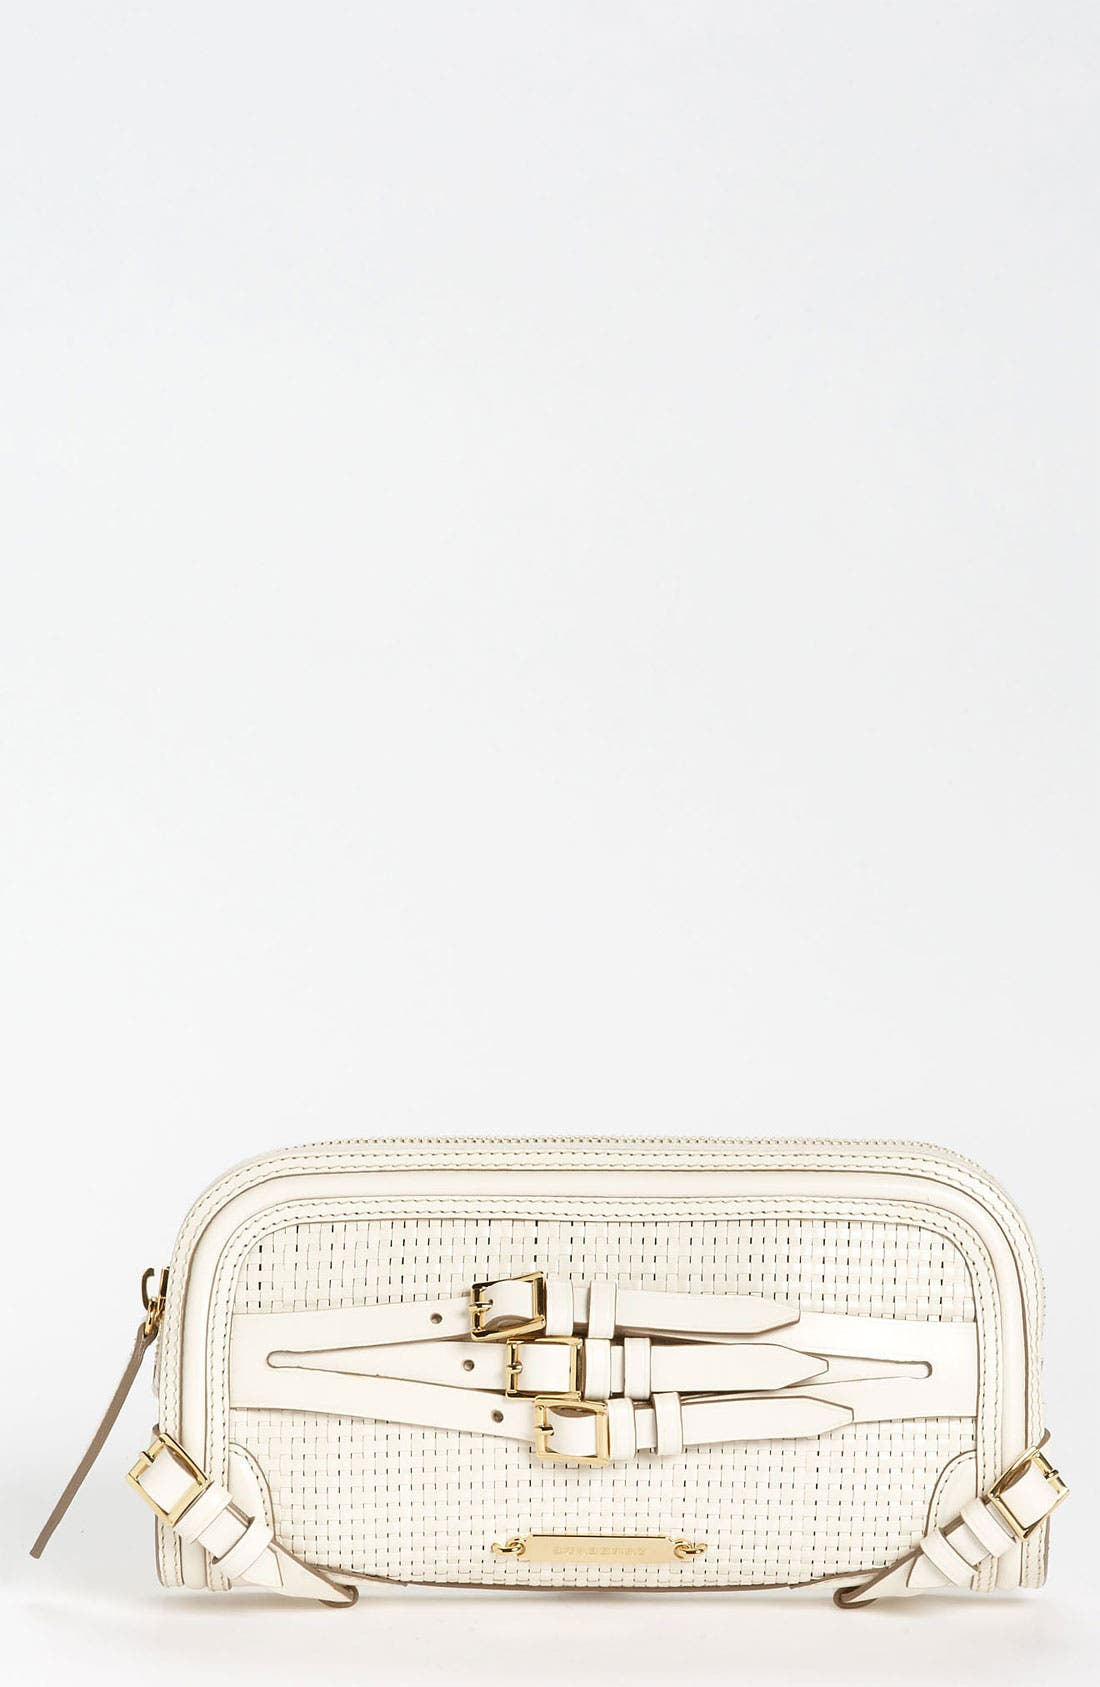 Alternate Image 1 Selected - Burberry 'Bridle' Woven Leather Clutch